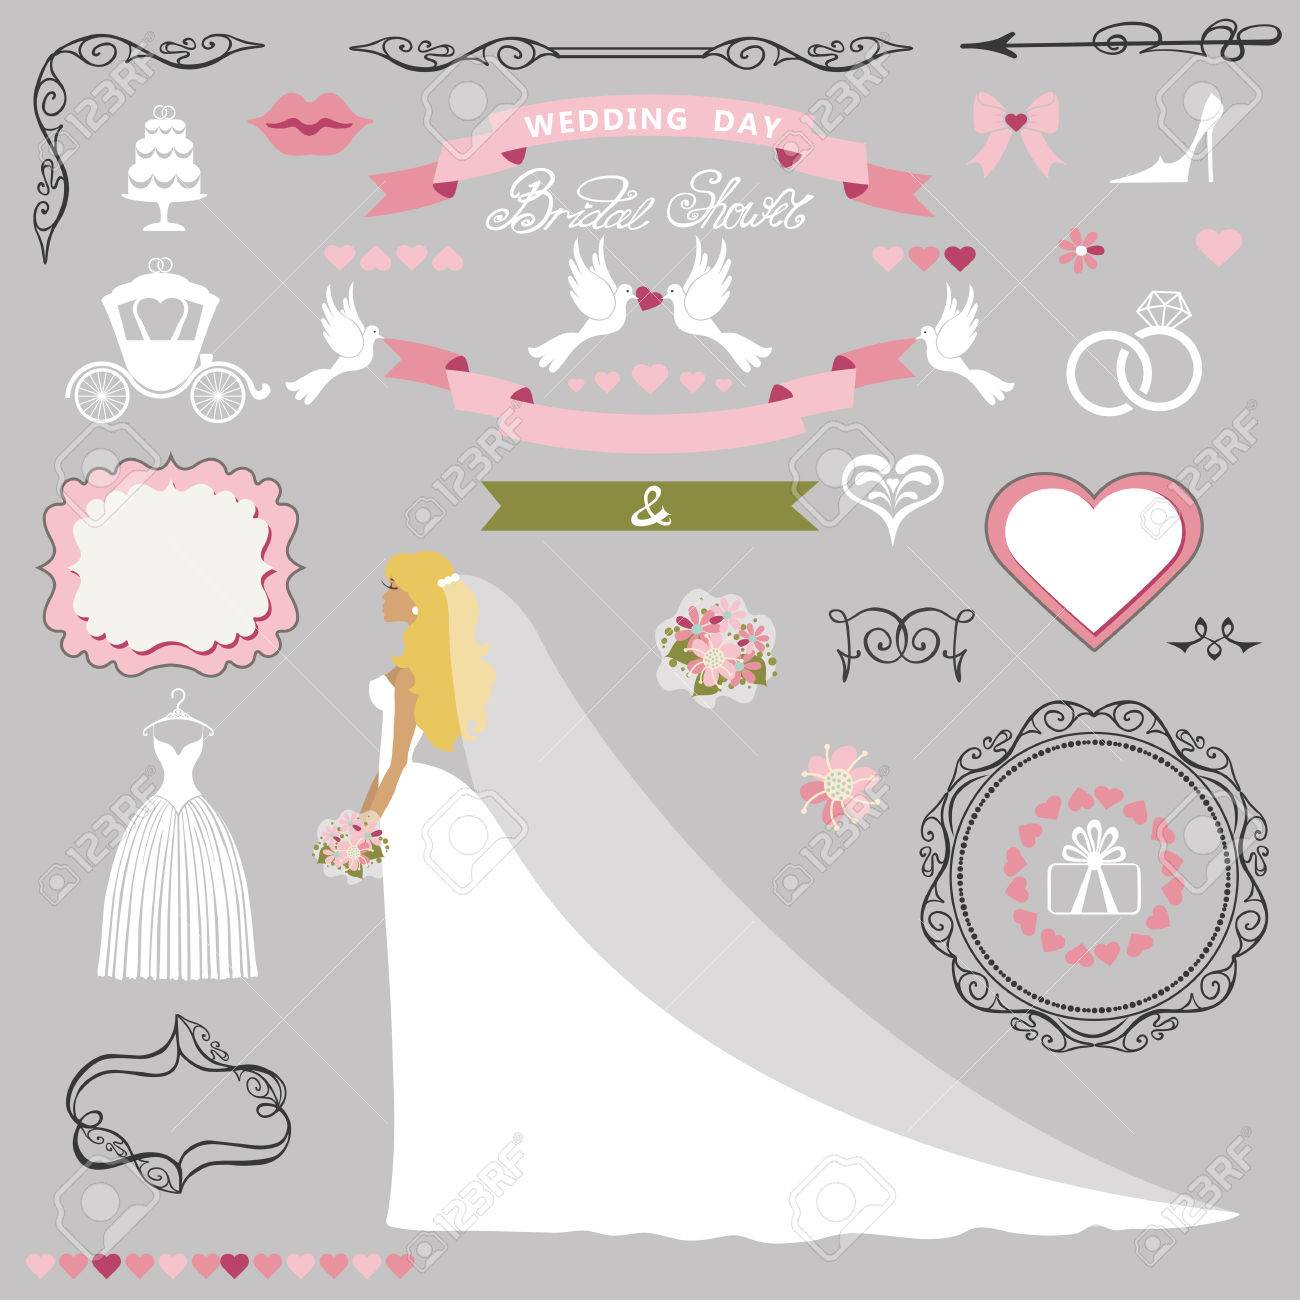 Wedding Bridal Shower Invitation Card Decor Set Cartoon Bride In Long Dress Swirling Borders Frames Ribbon Flowers Icons Heart And Label Design